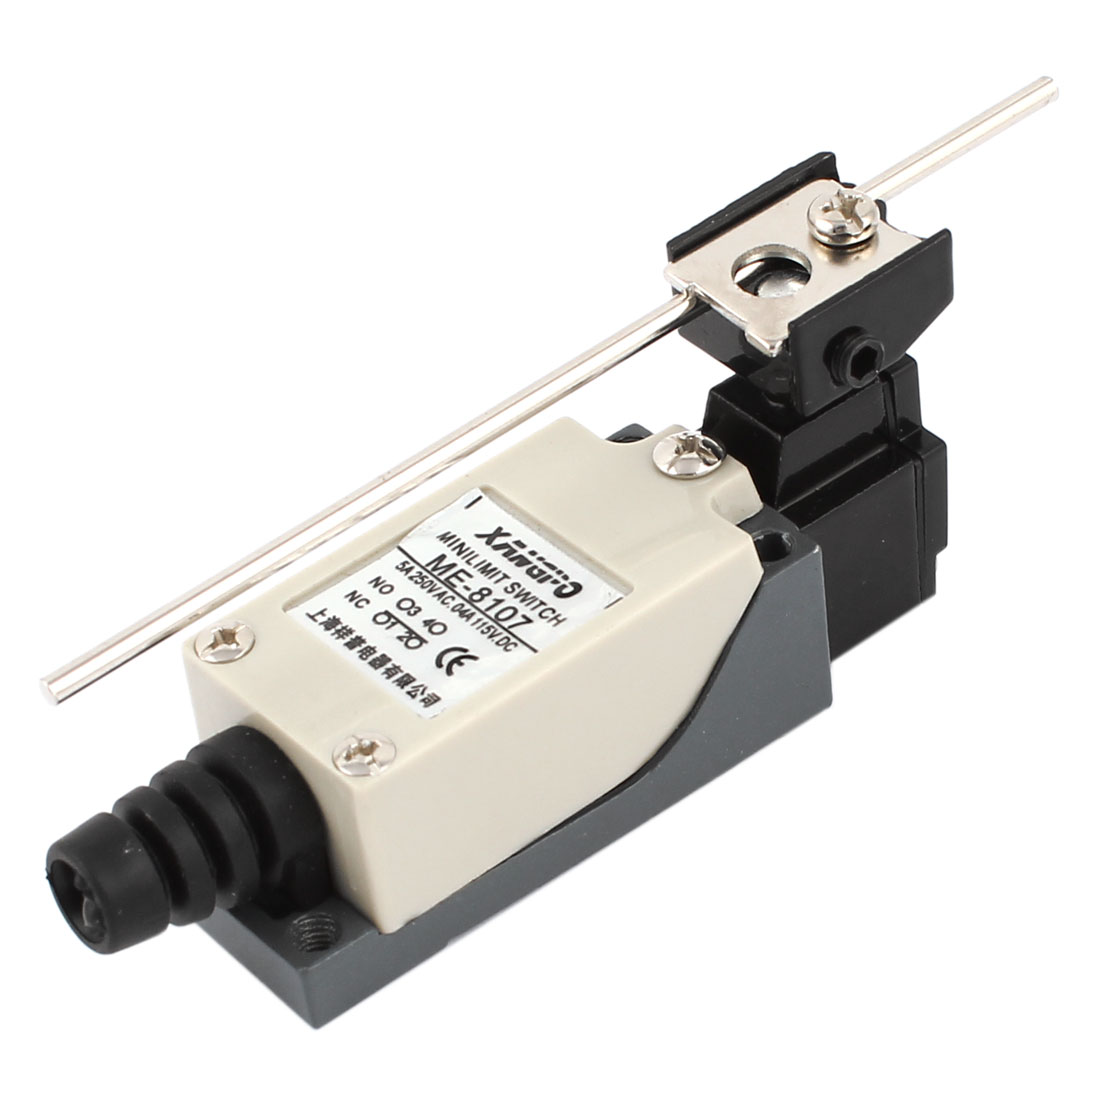 AC 250V 5A DC 115V 0.4A NO NC SPDT Mechanical Control Rotary Lever Limit Switch